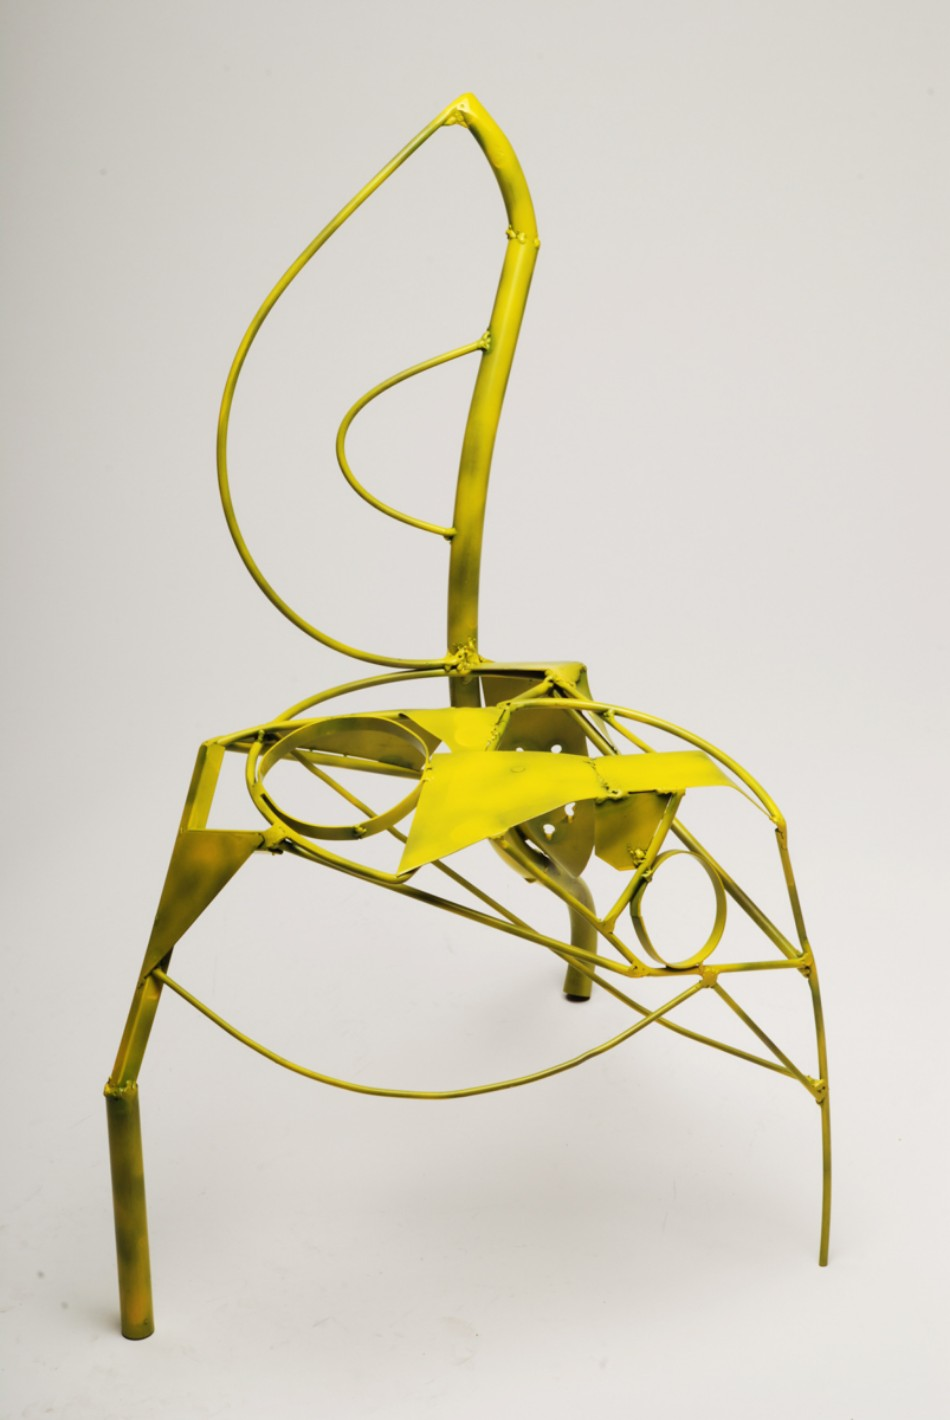 Benjamin Nordsmark Created Art From Modern Dining Chairs | www.bocadolobo.com #diningchairs #artisticchairs #artfurniture #thediningroom #diningarea #diningdesign #moderndiningtable @moderndiningtable modern Dining Chairs Benjamin Nordsmark Created Art From Modern Dining Chairs Benjamin Nordsmark Created Art From Modern Dining Chairs 1